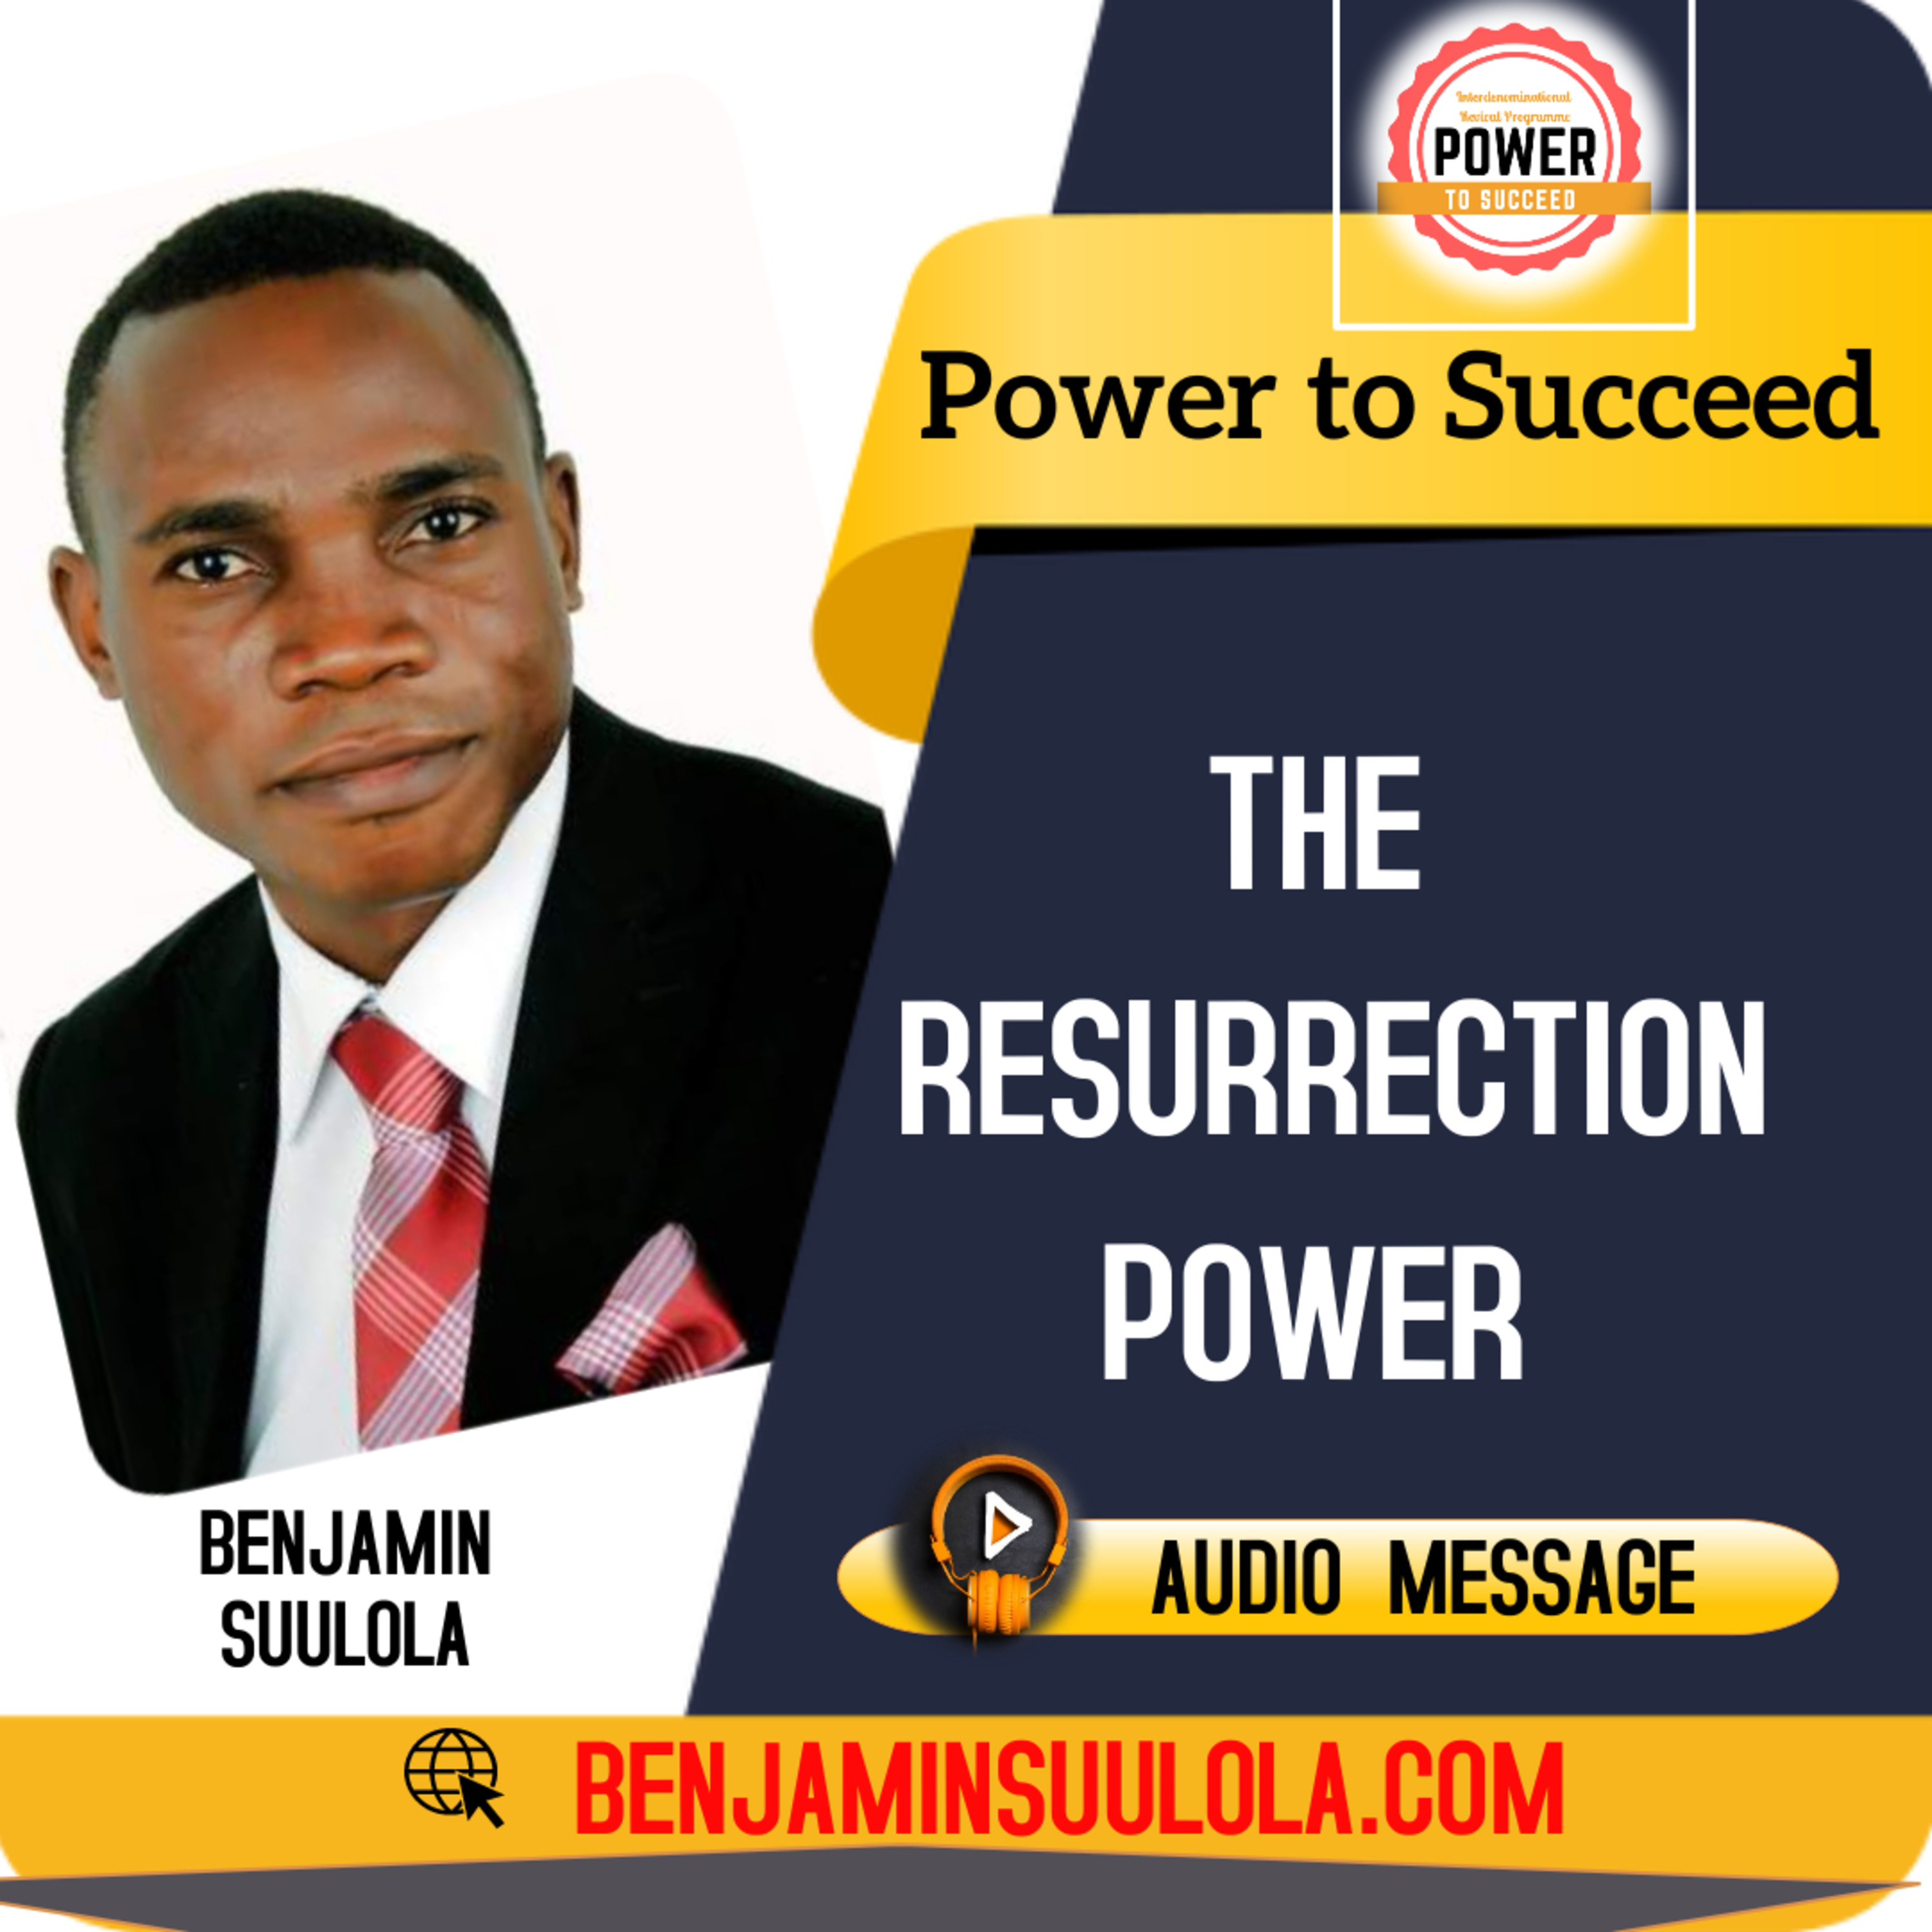 The Resurrection Power